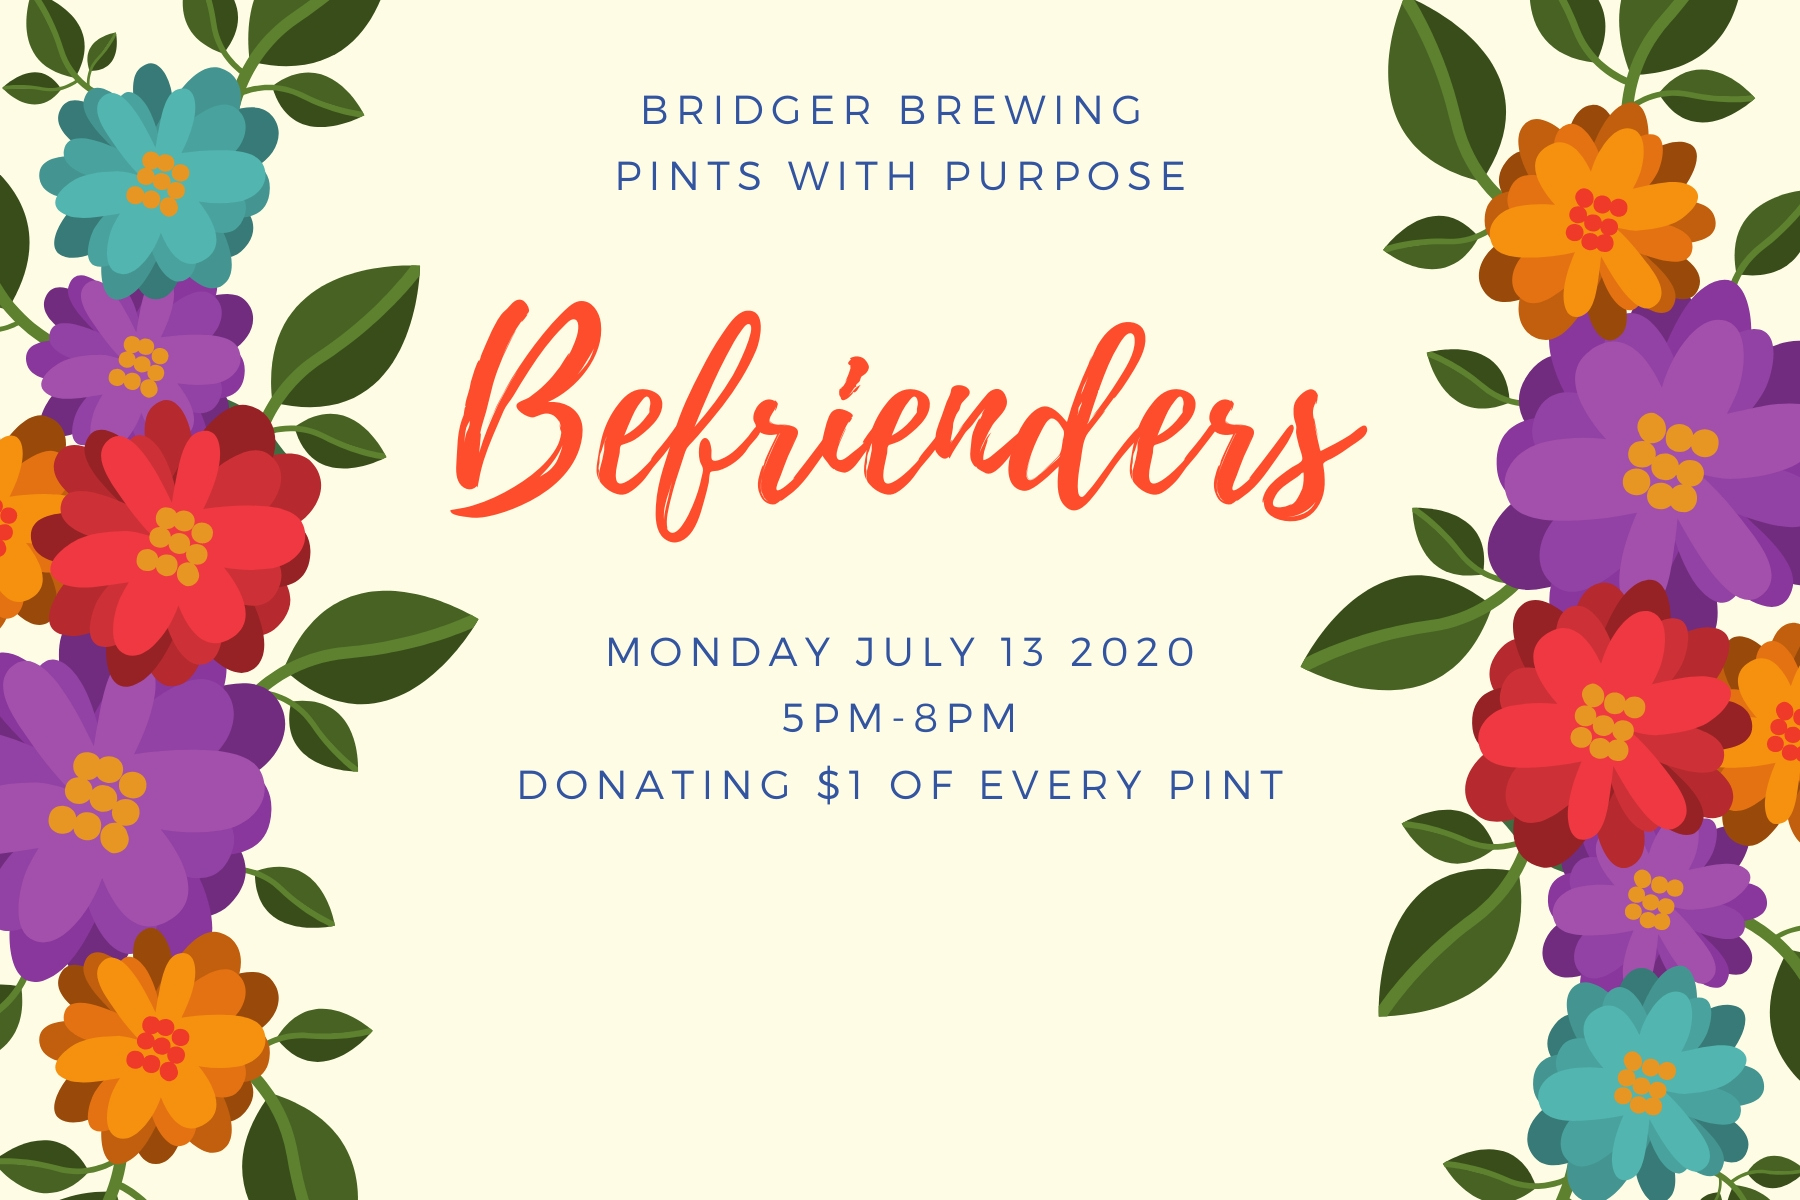 Pints with Purpose :: Befrienders